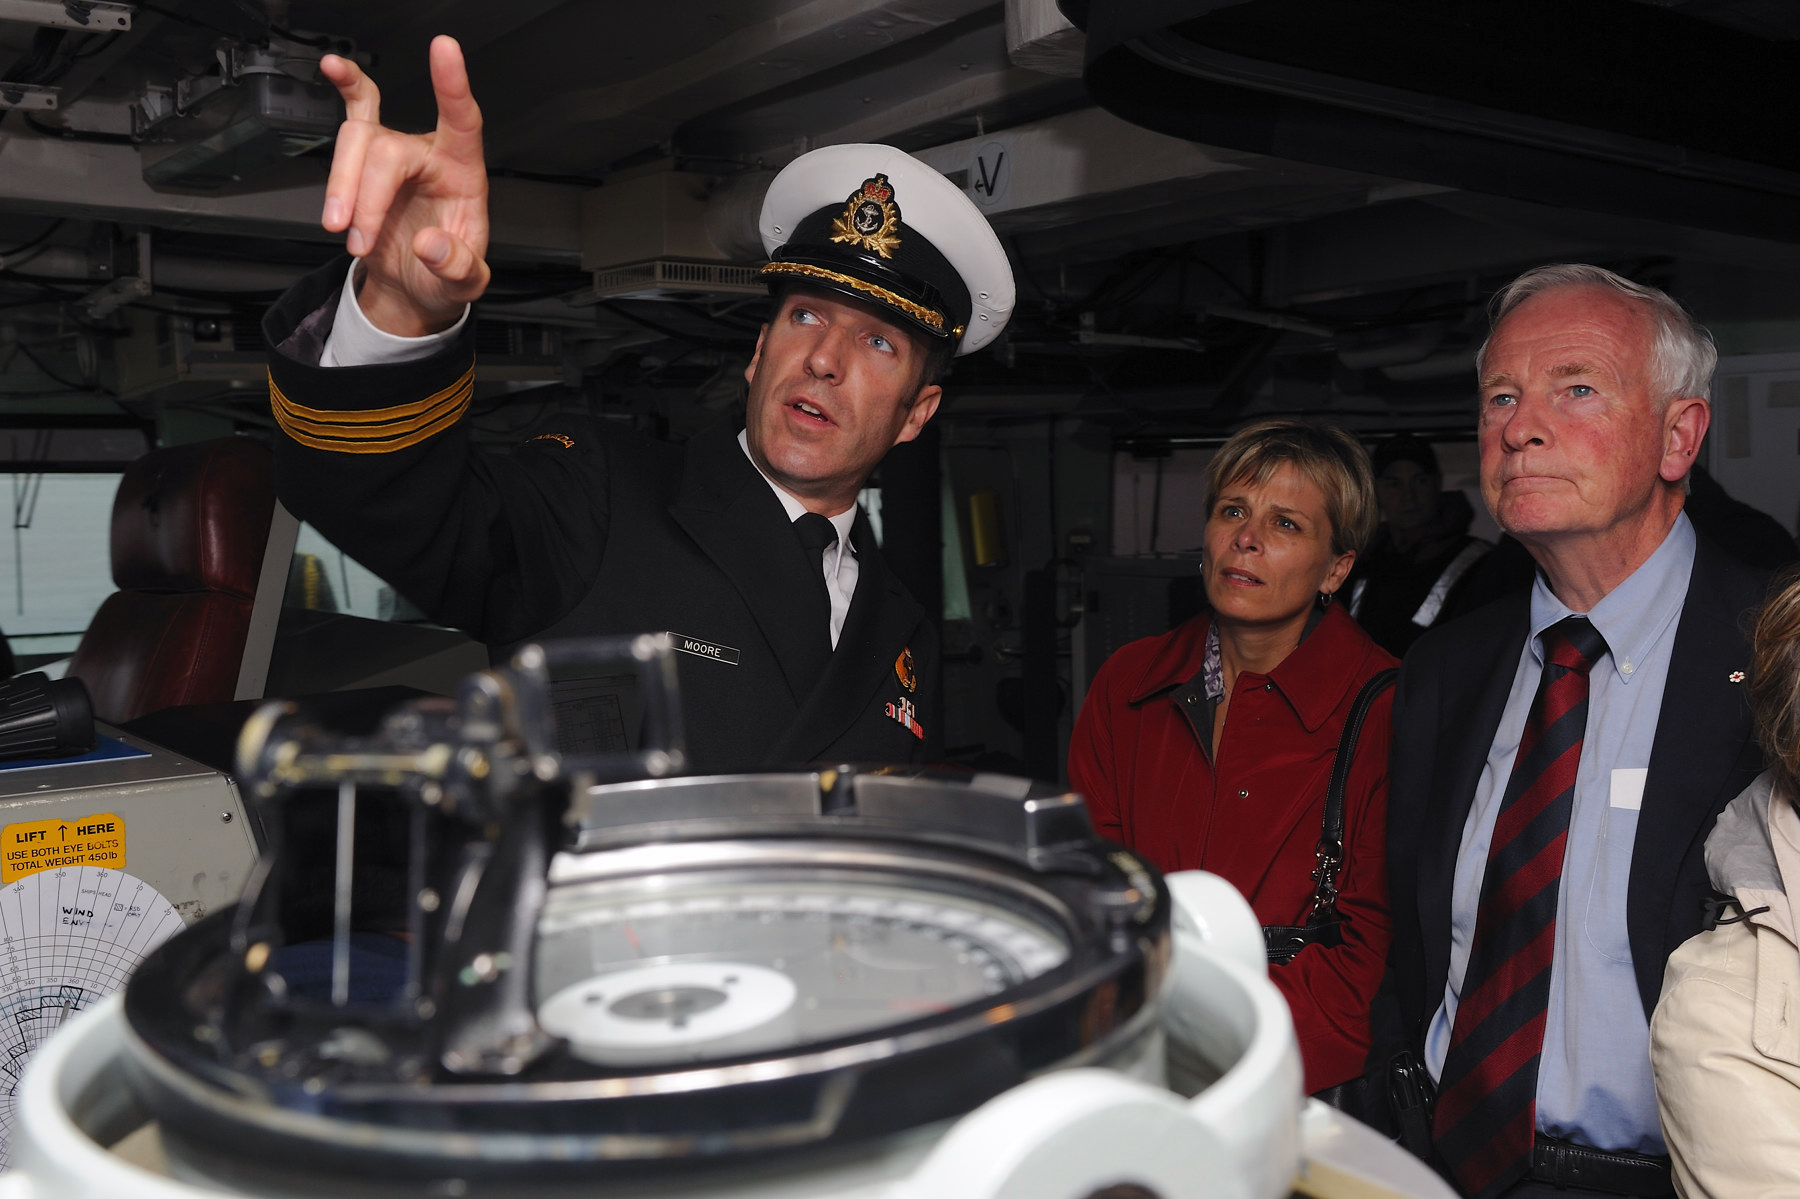 The Governor General visited Maritime Forces Pacific and sailed on board HMCS Regina. Captain Chris Moore provided a brief tour of the bridge.